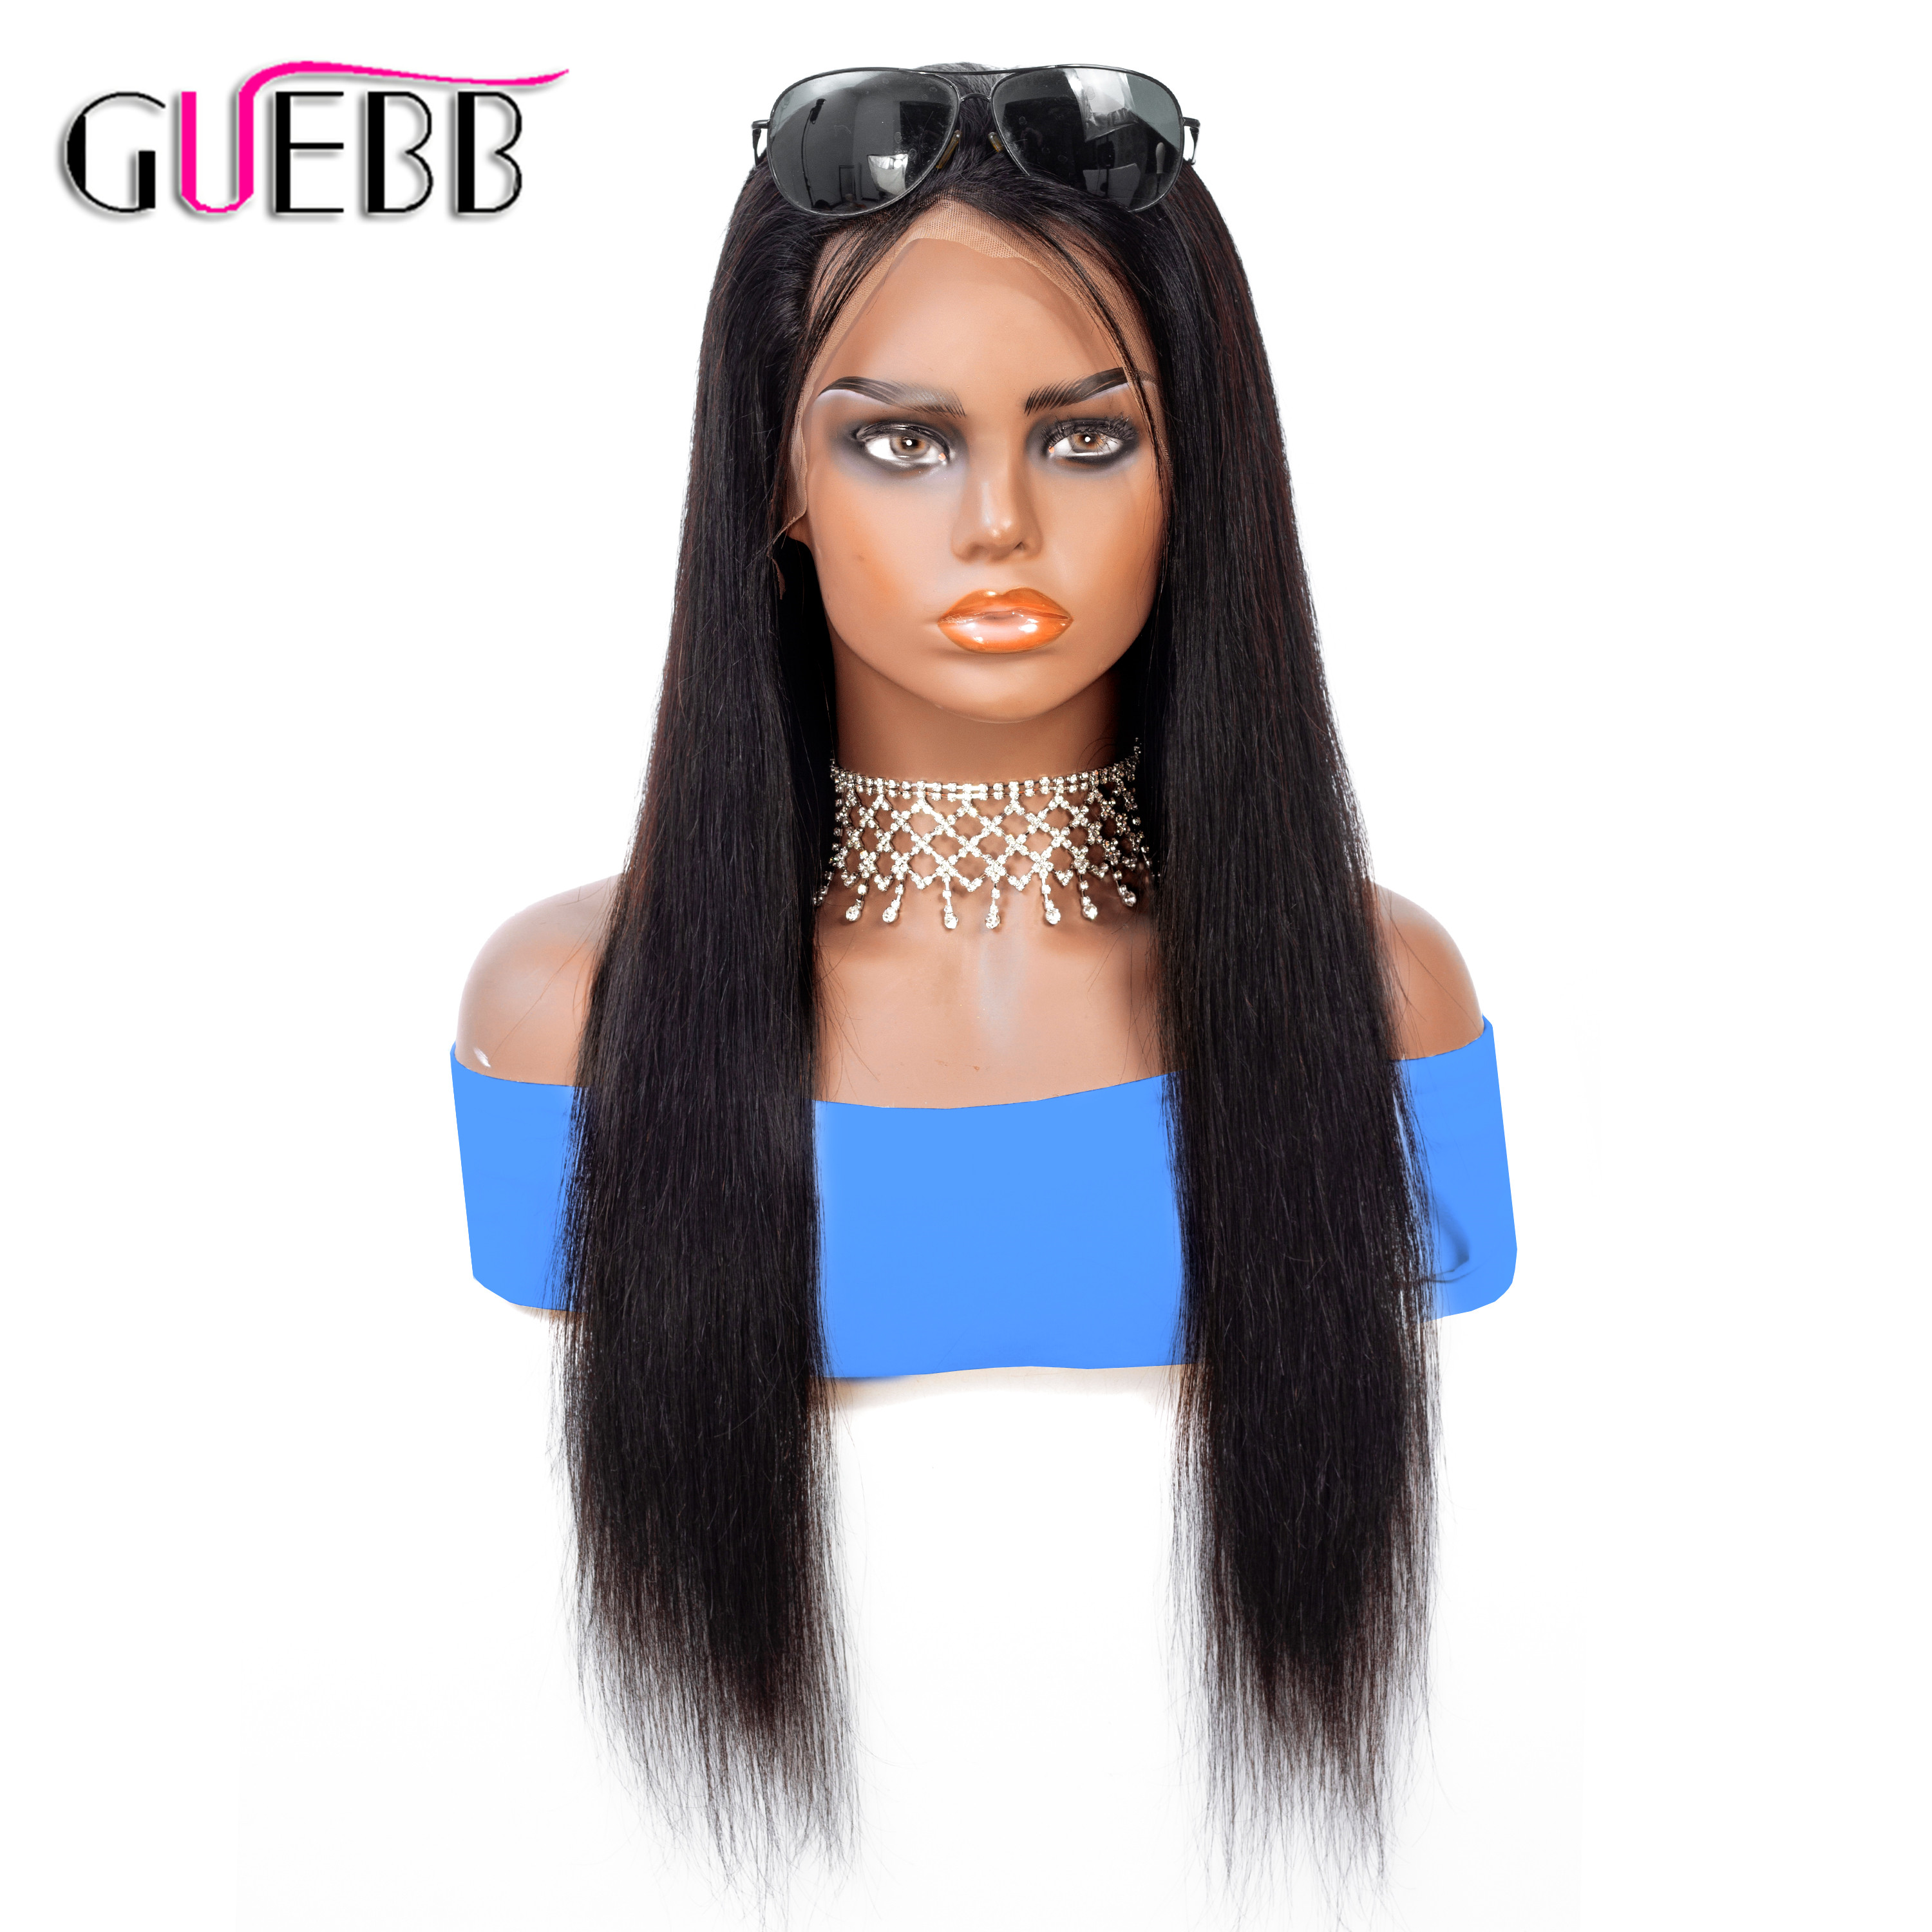 Brazilian 13 4 Straight Lace Front Human Hair Wigs Remy 10 26 Inch Lace Front Wig